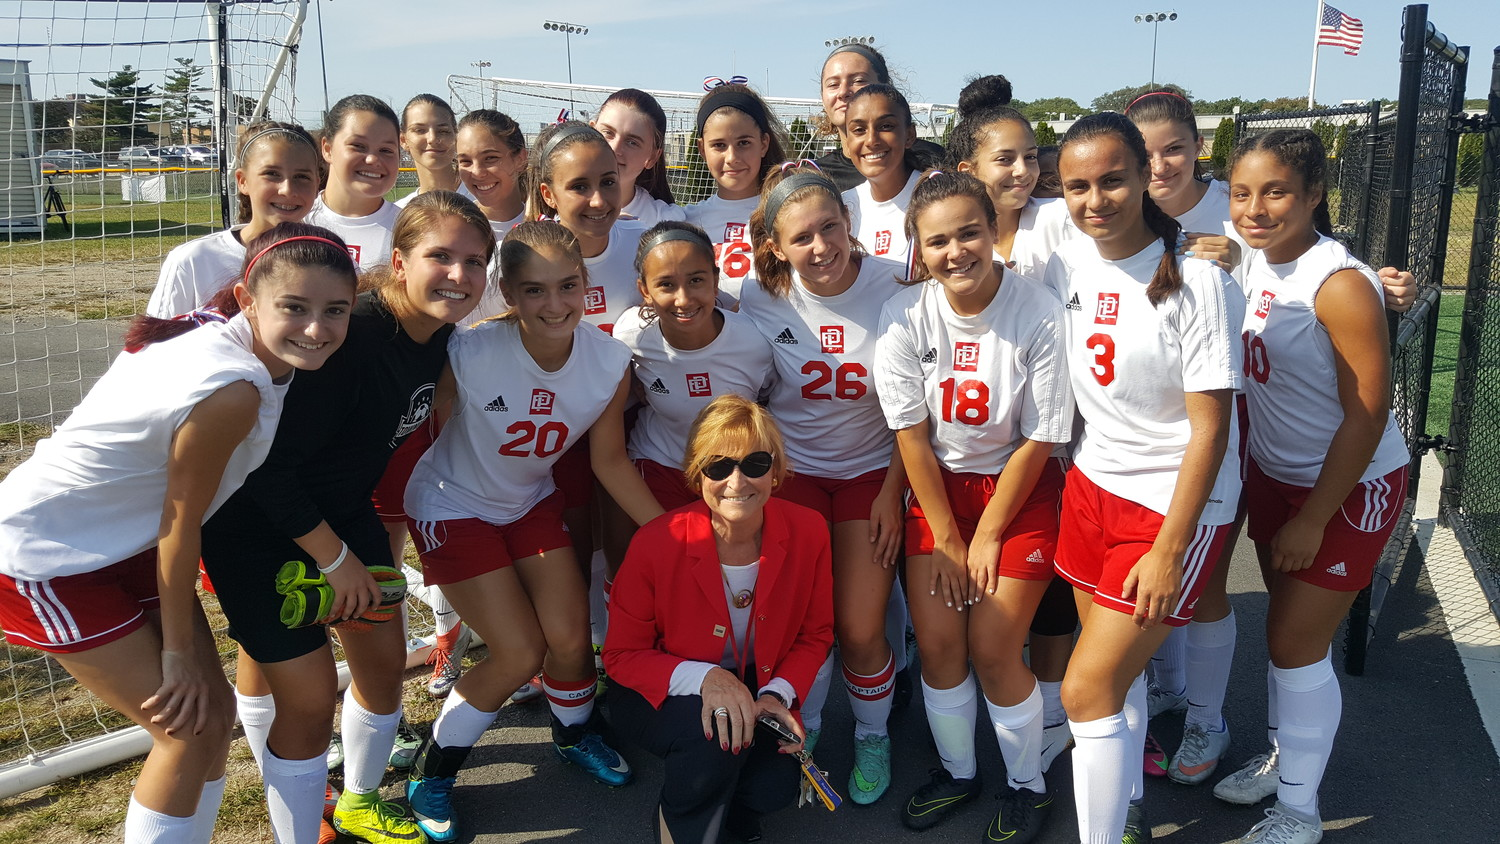 Superintendent of Schools Kathryn Crowley joins the EPHS girls soccer team in a tribute on September 11th.